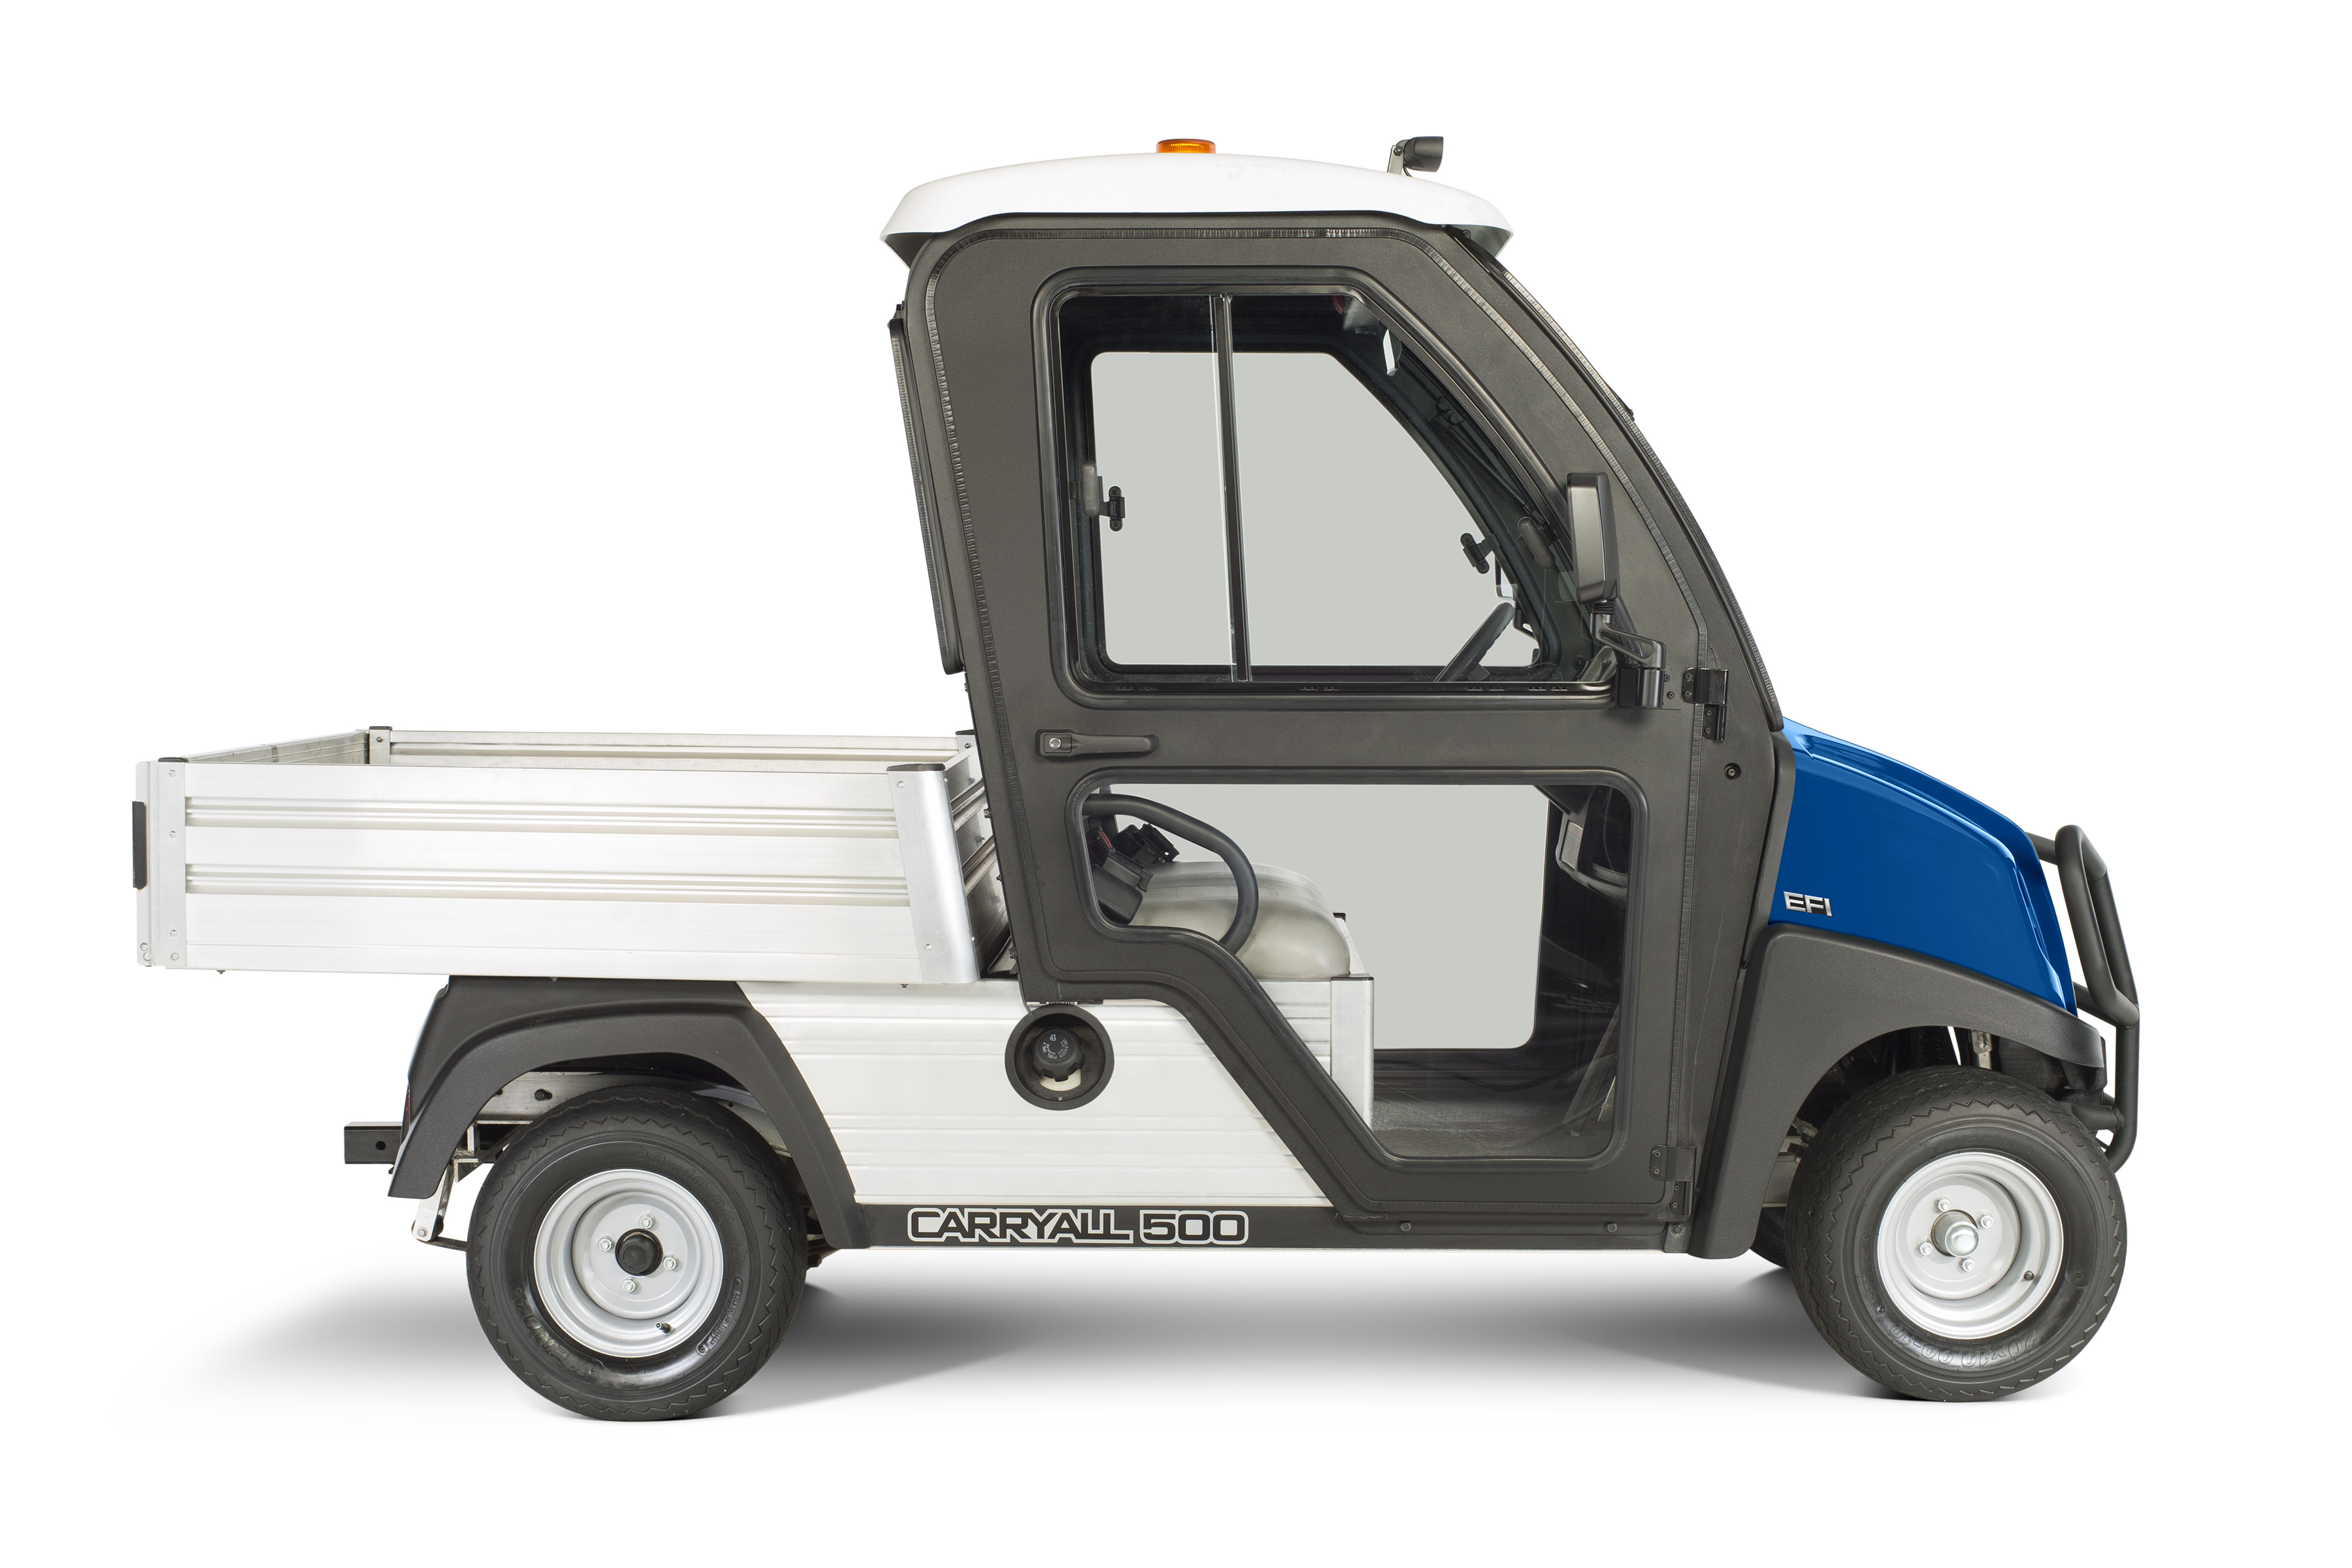 Club Car Introduces Upgraded Cab For Two Wheel Drive